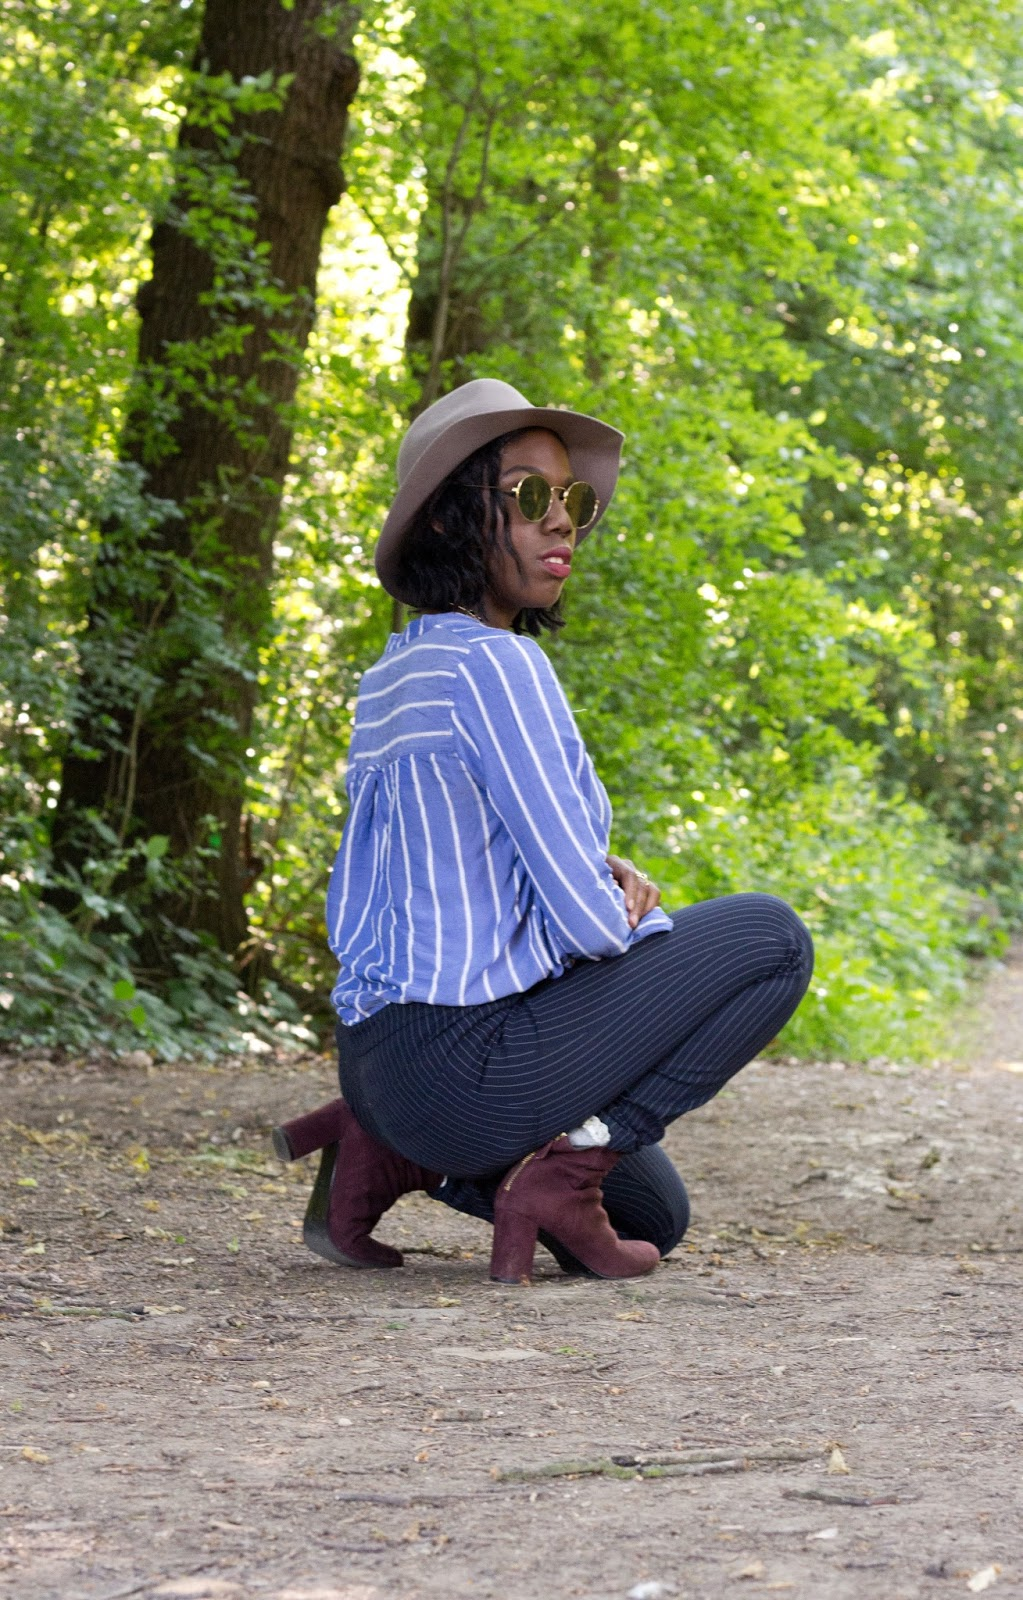 Authentic Beauty in Blogging, boden suede wine boots, H&M Striped blue shirt, H&M Pinstripe navy blue trousers, H&M brown suede fedora, floppy fedora hat, asos mirror sunglasses, fryent way country park, fashion photography, blogger photography, fashion blogger photography, style, summer style, spring style, nautical styling, 100 ways to 30, uk fashion and life blog, H&M womenswear